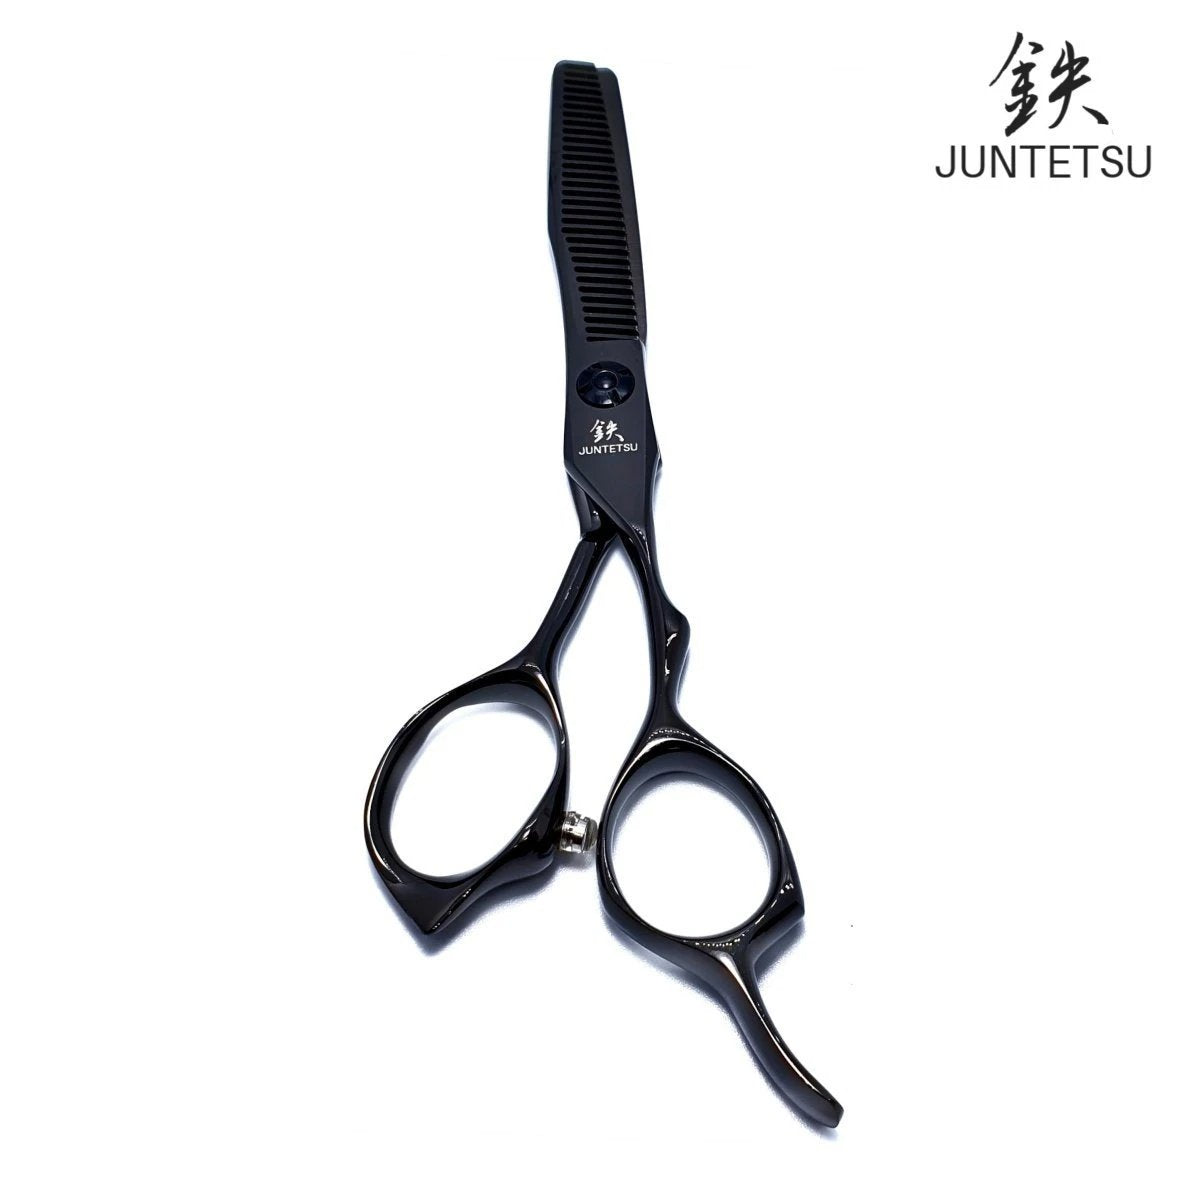 Juntetsu Night Thinning Scissors - Japan Scissors